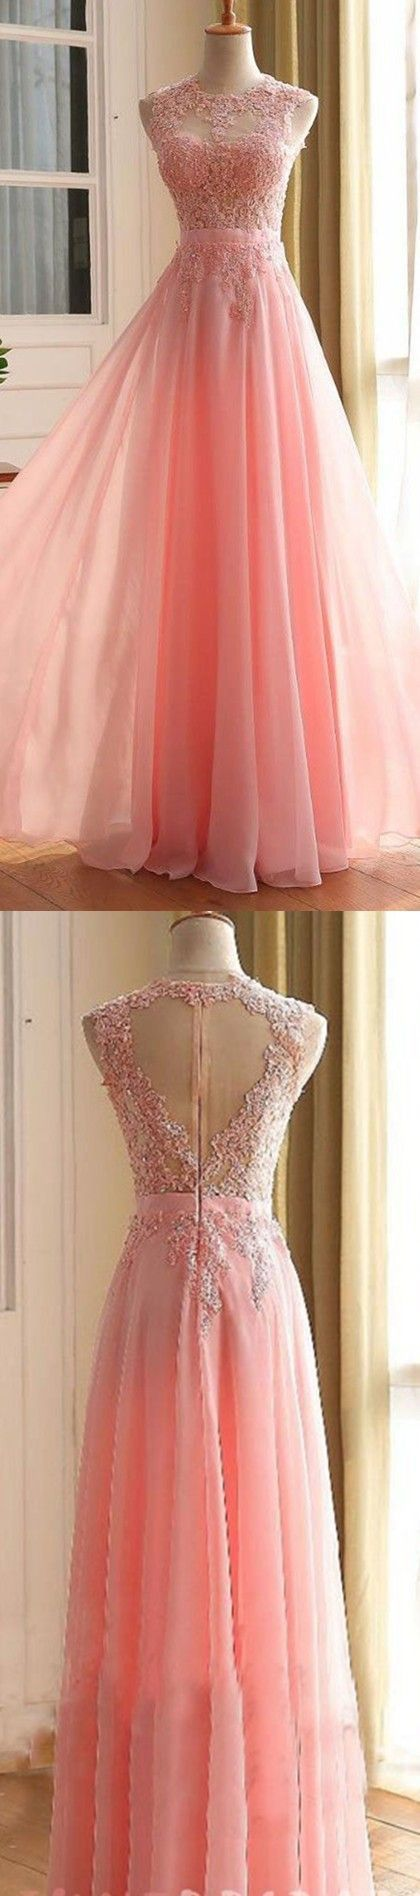 Charming Prom Dress,Long Appliques Evening Dress,A Line Prom Dress,Tulle Pink Prom Dresses F3604